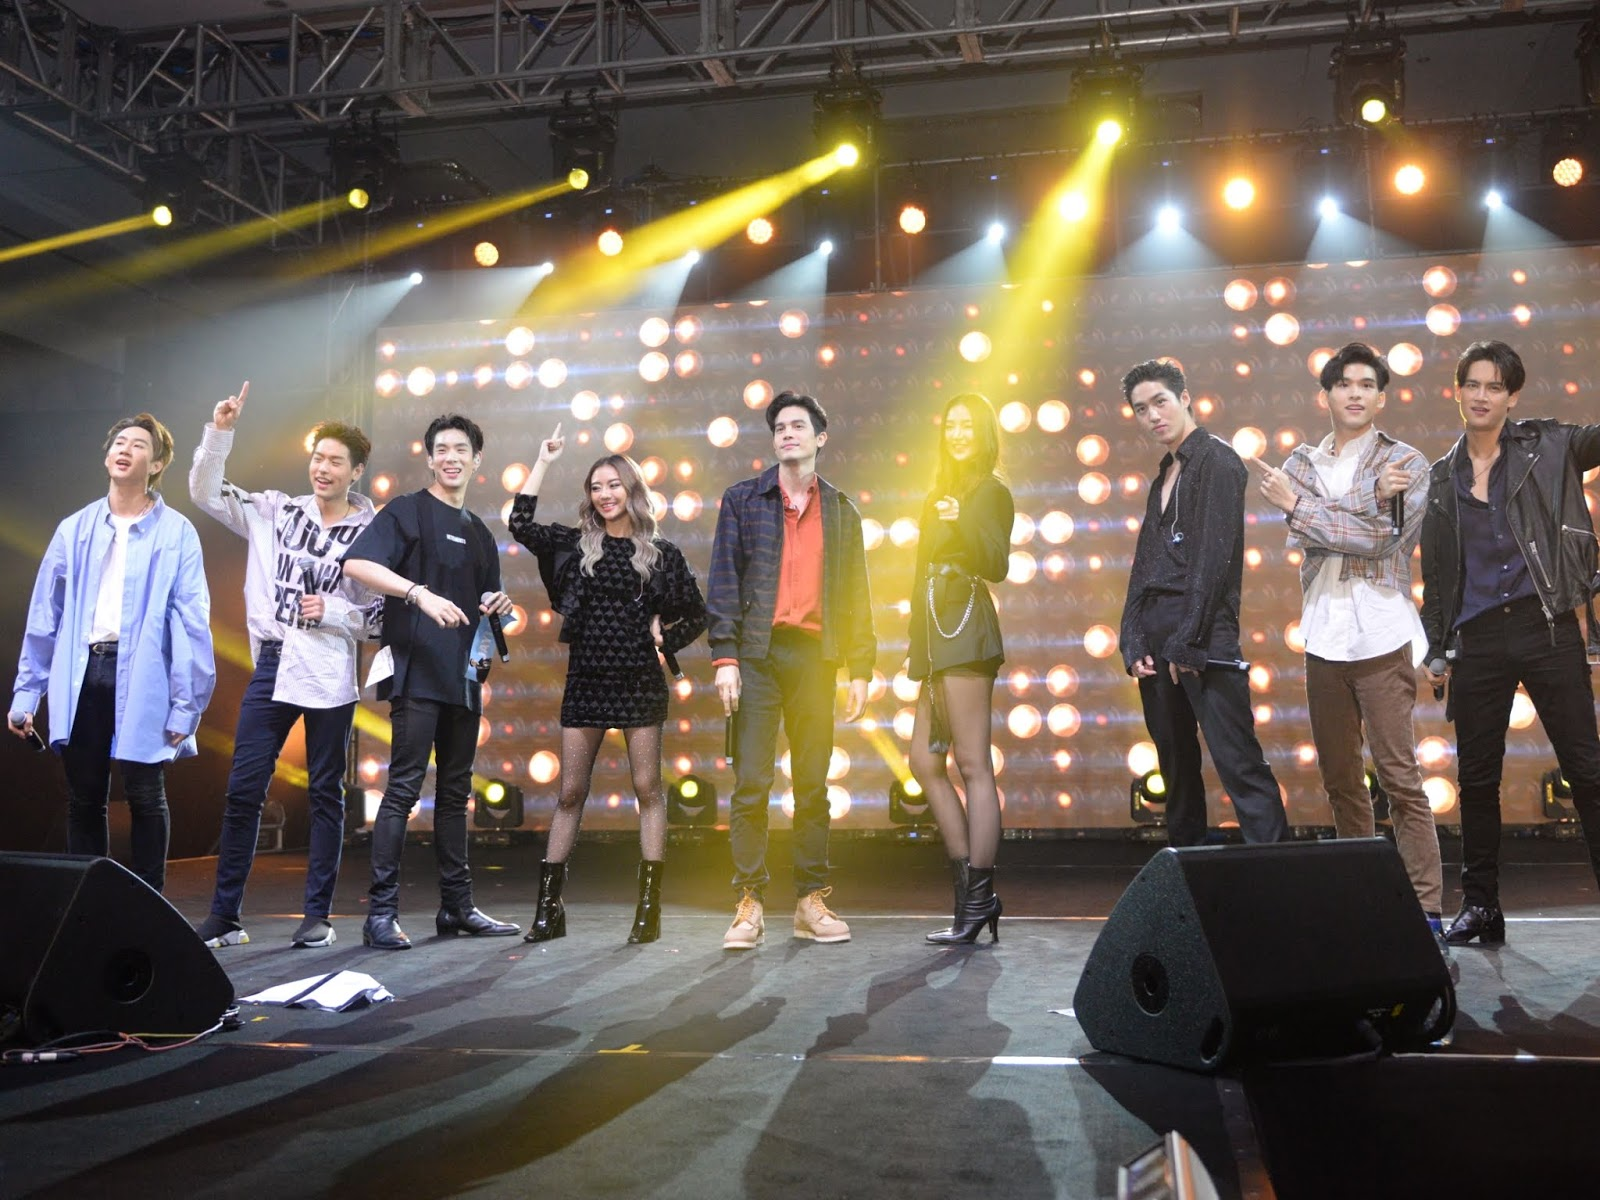 Sunny, Tor, Pearwah and more perform together in KL for the first time